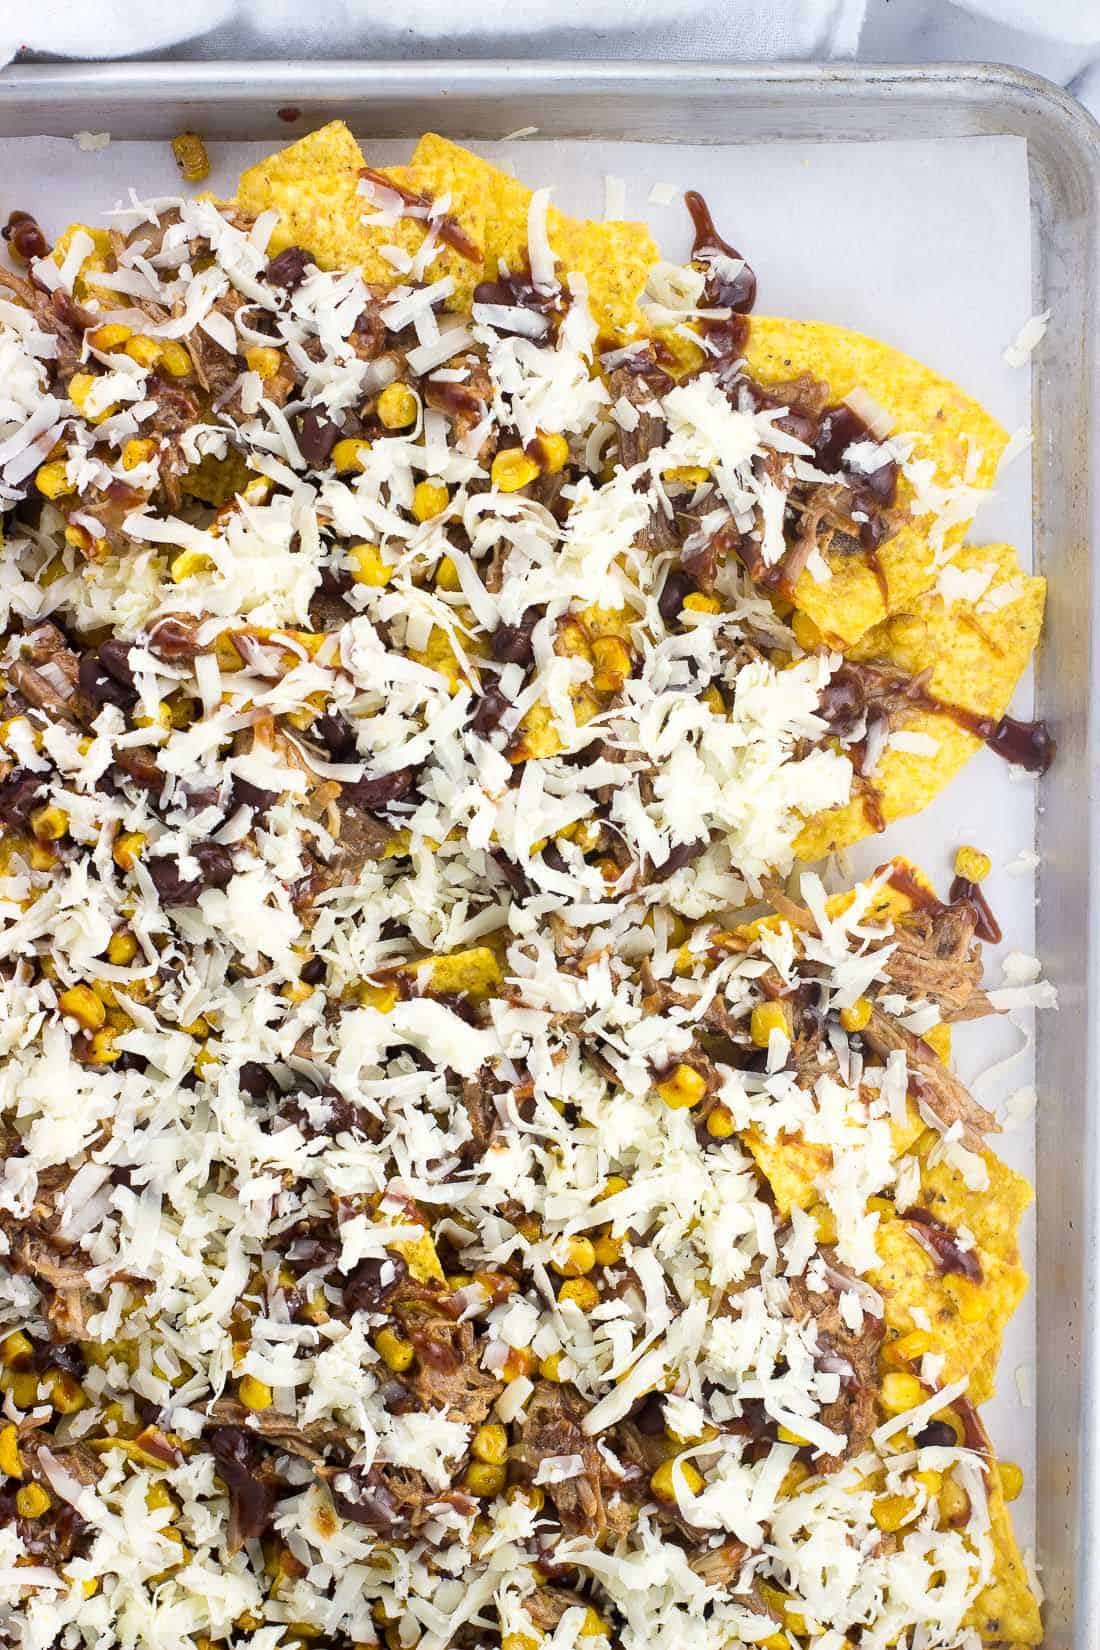 Tortilla chips, pulled pork, corn, and black beans on a sheet pan topped with shredded cheese before going in the oven